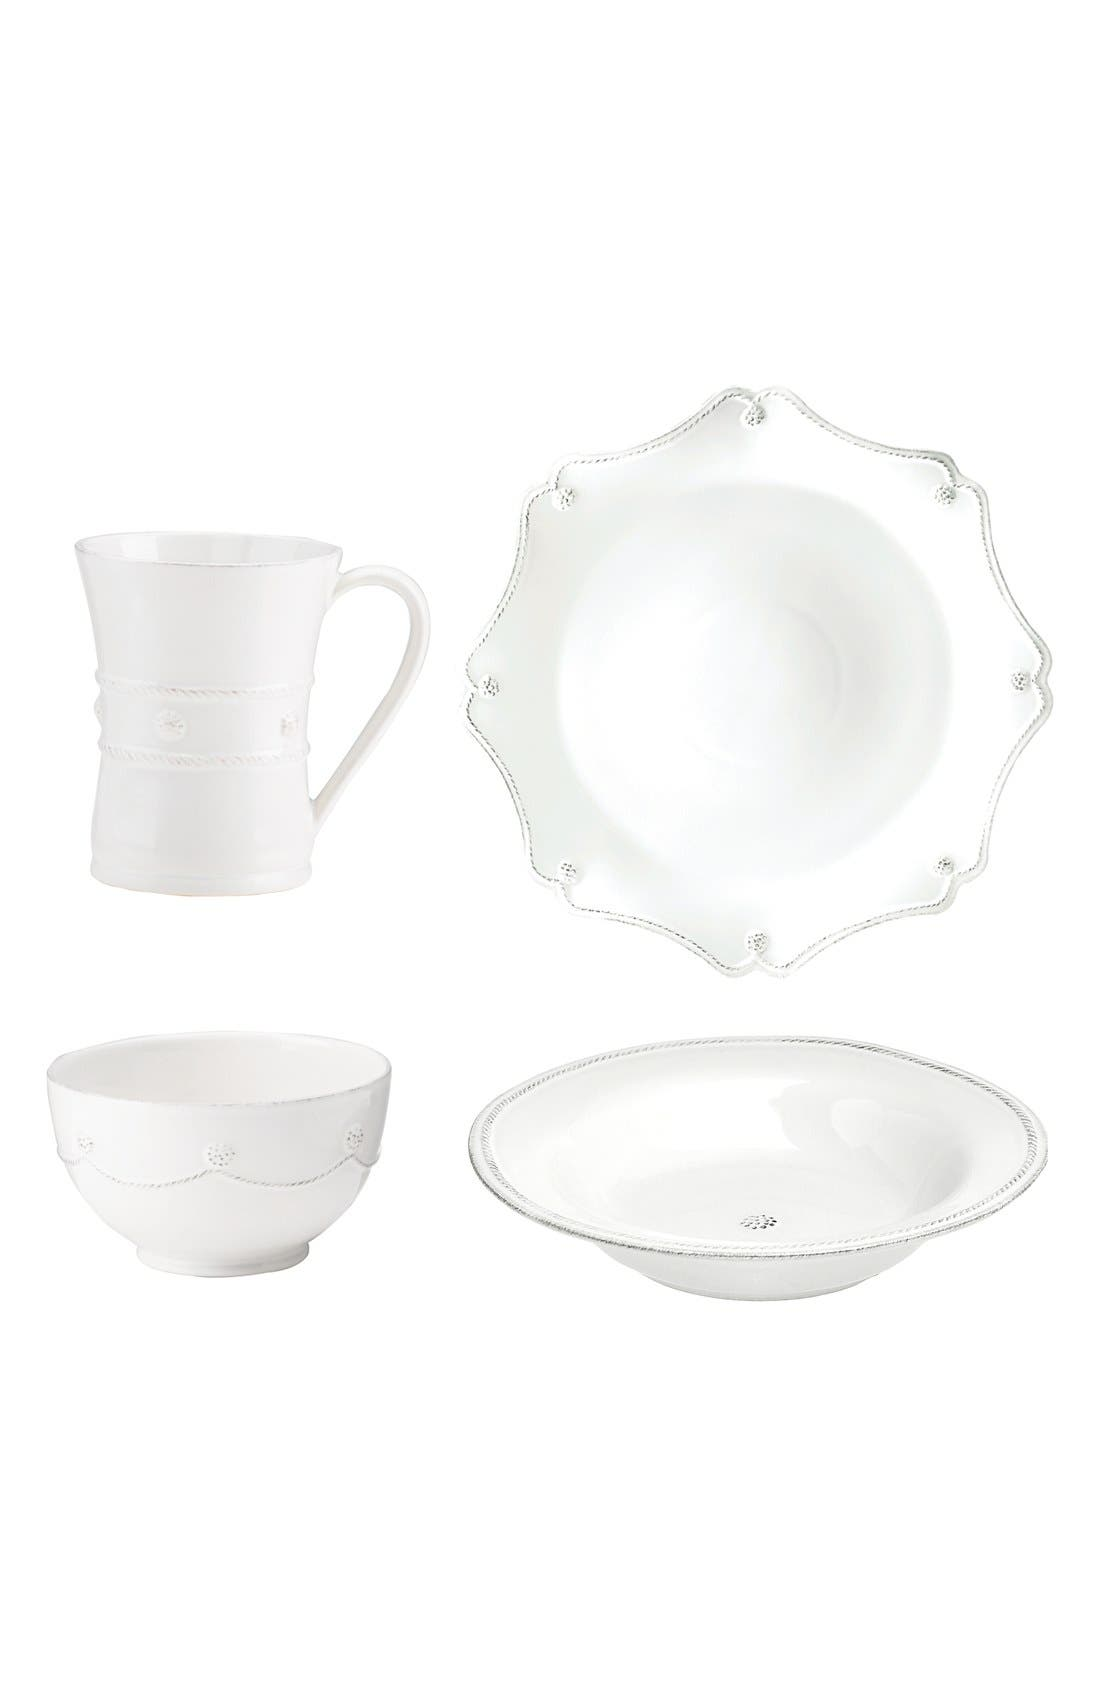 JULISKA 'Berry and Thread' 4-Piece Dinnerware Add-On Set